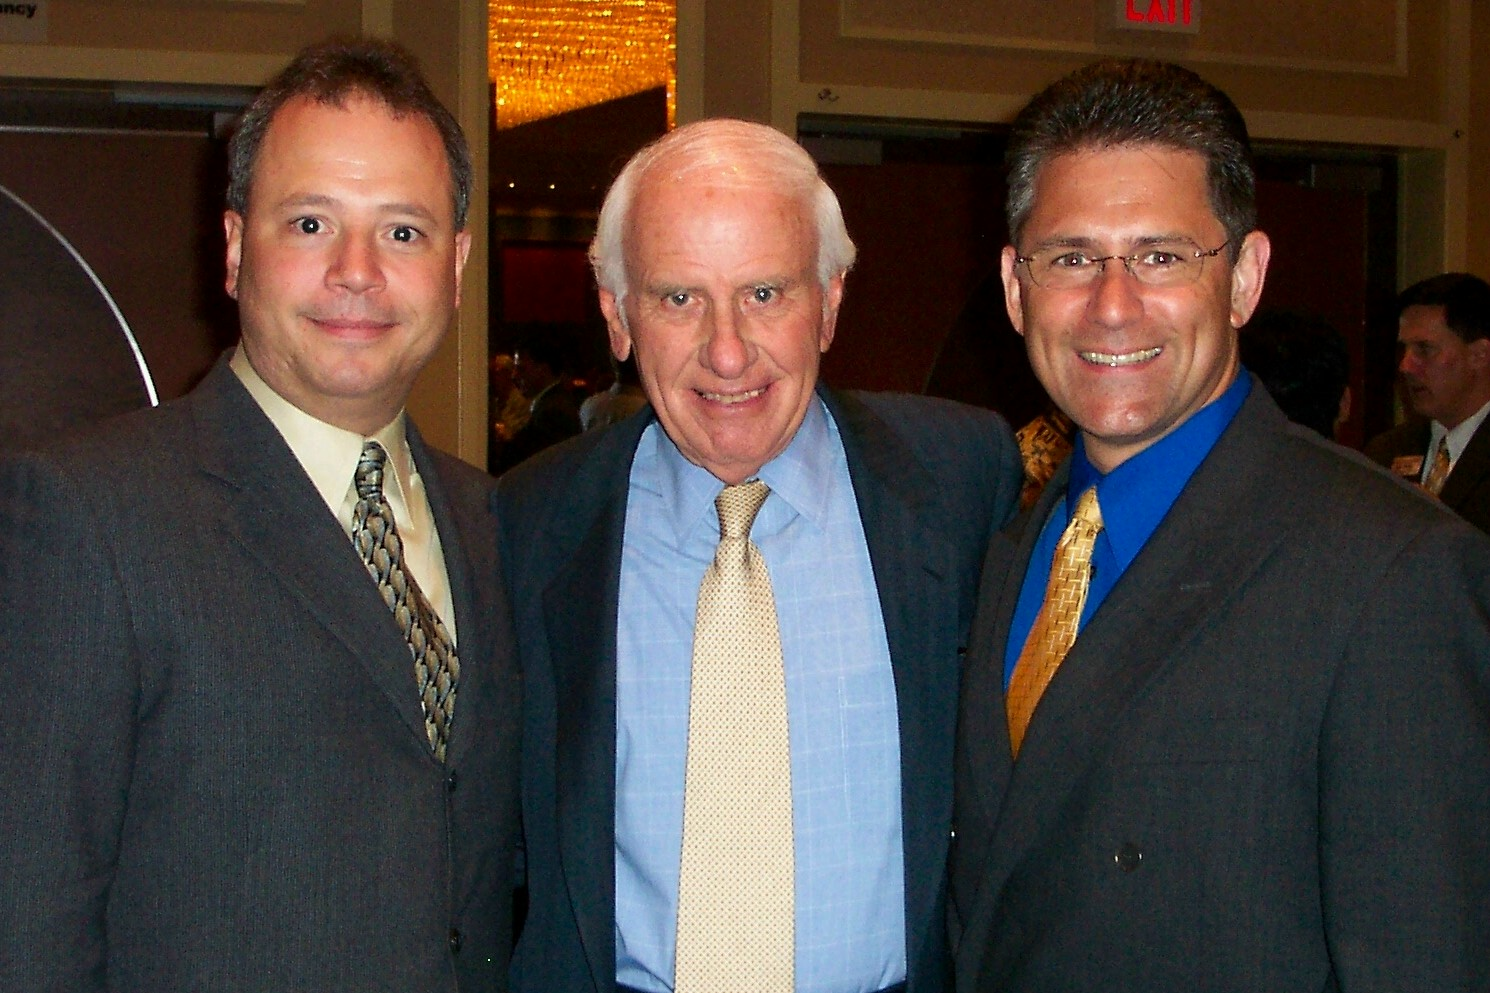 Robert Helms and Russell Gray were blessed to hang out with the late great Jim Rohn